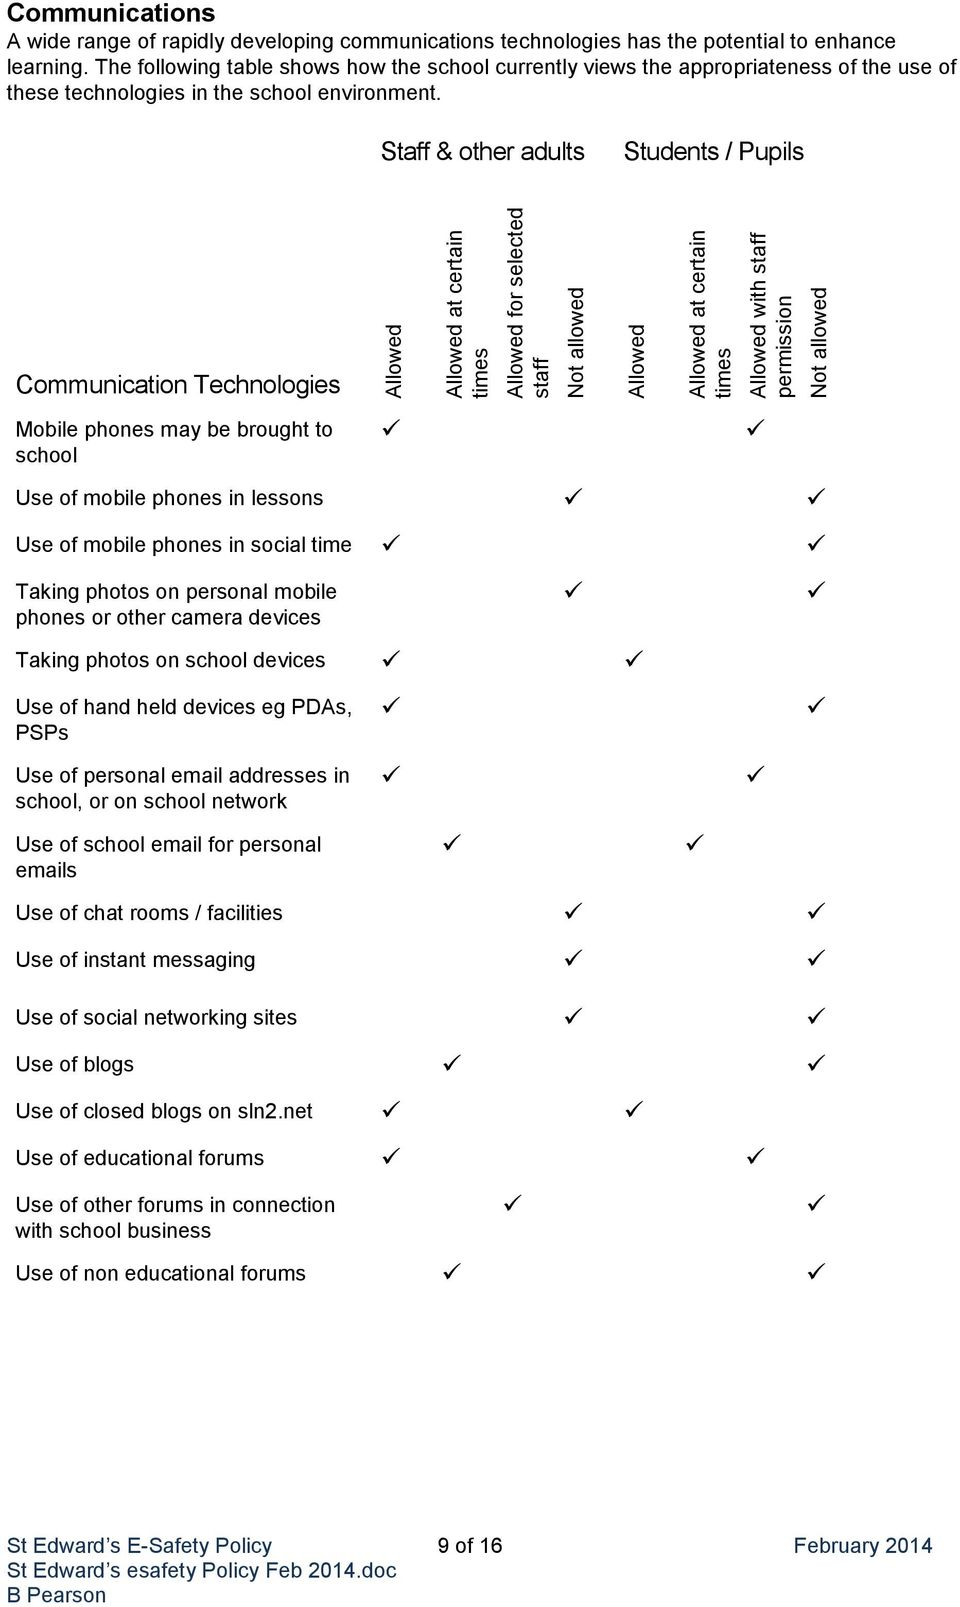 The following table shows how the school currently views the appropriateness of the use of these technologies in the school environment.